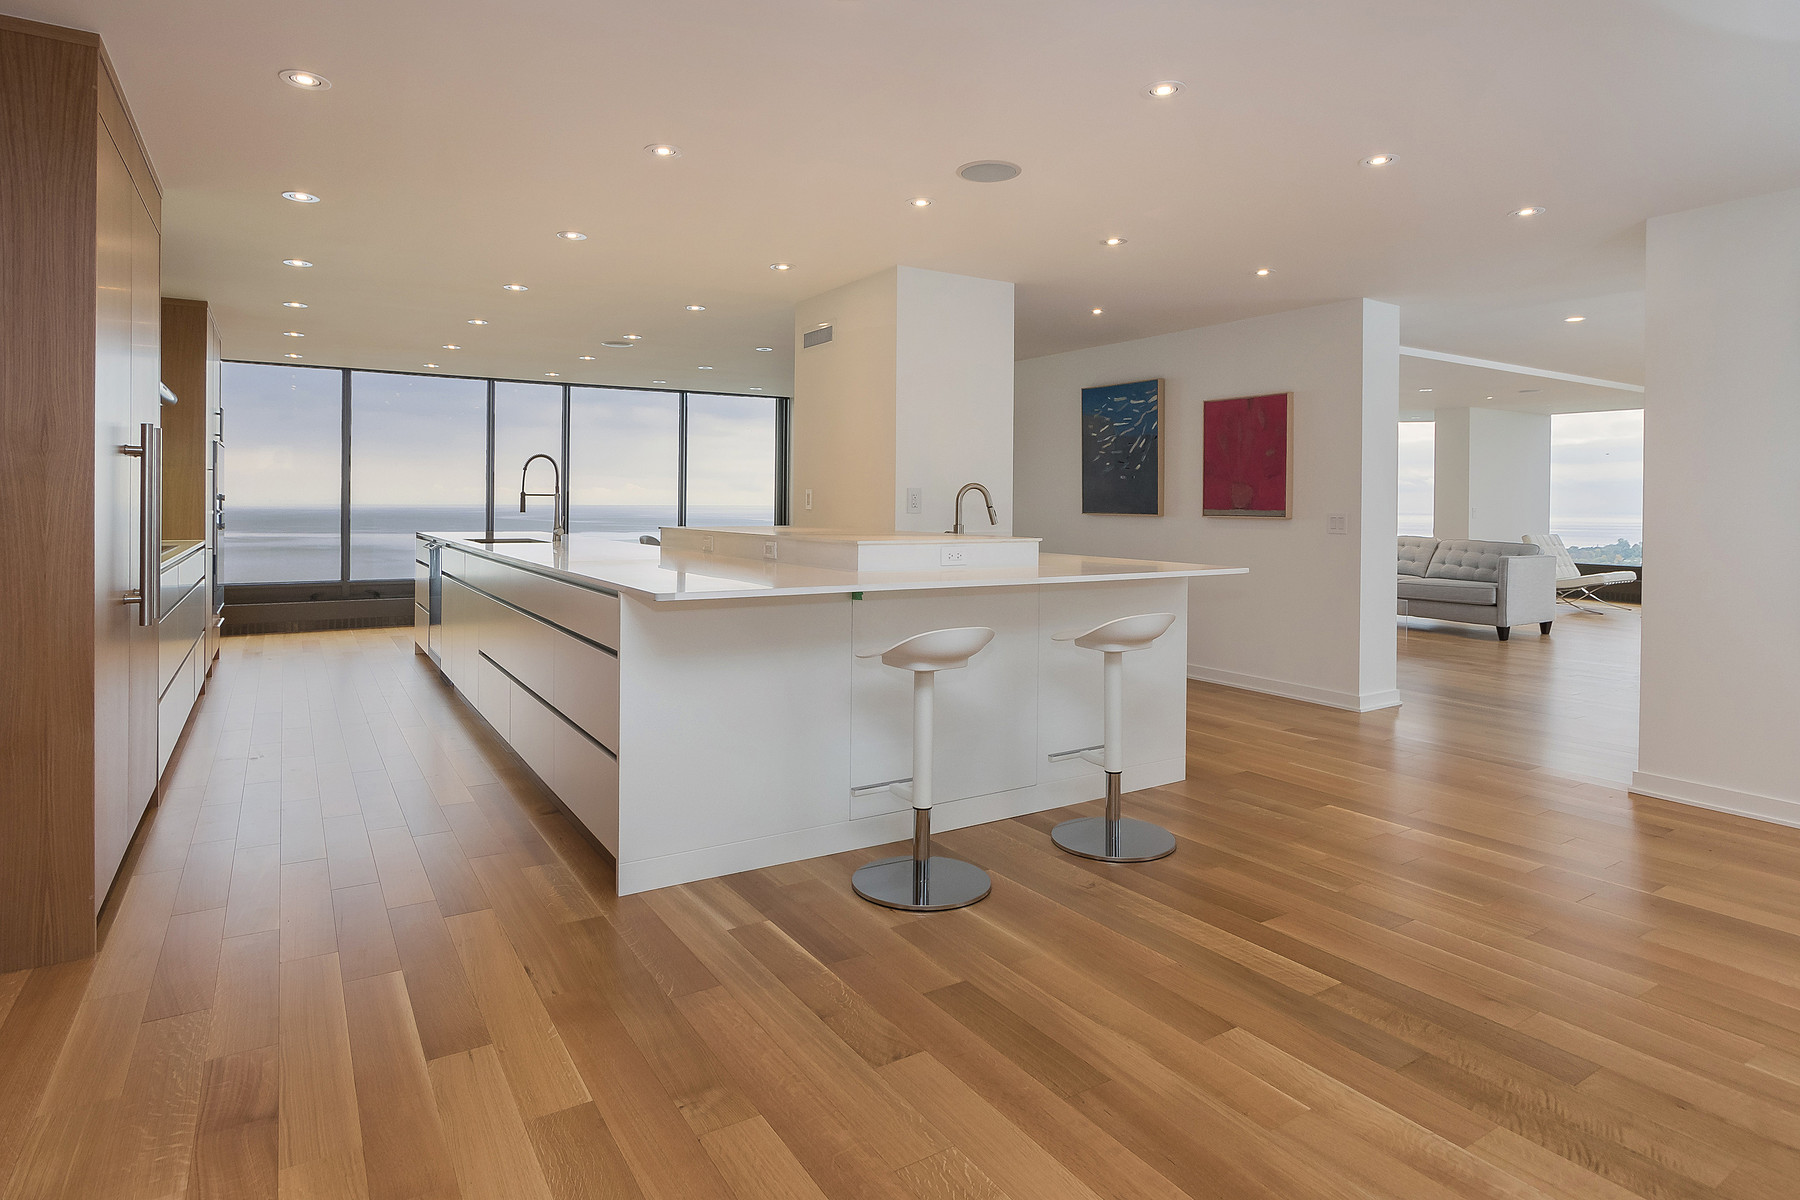 Other Residential for Sale at Remodelled Luxury Suite 2701-2045 Lake Shore Blvd. W Toronto, Ontario M8V 2Z6 Canada